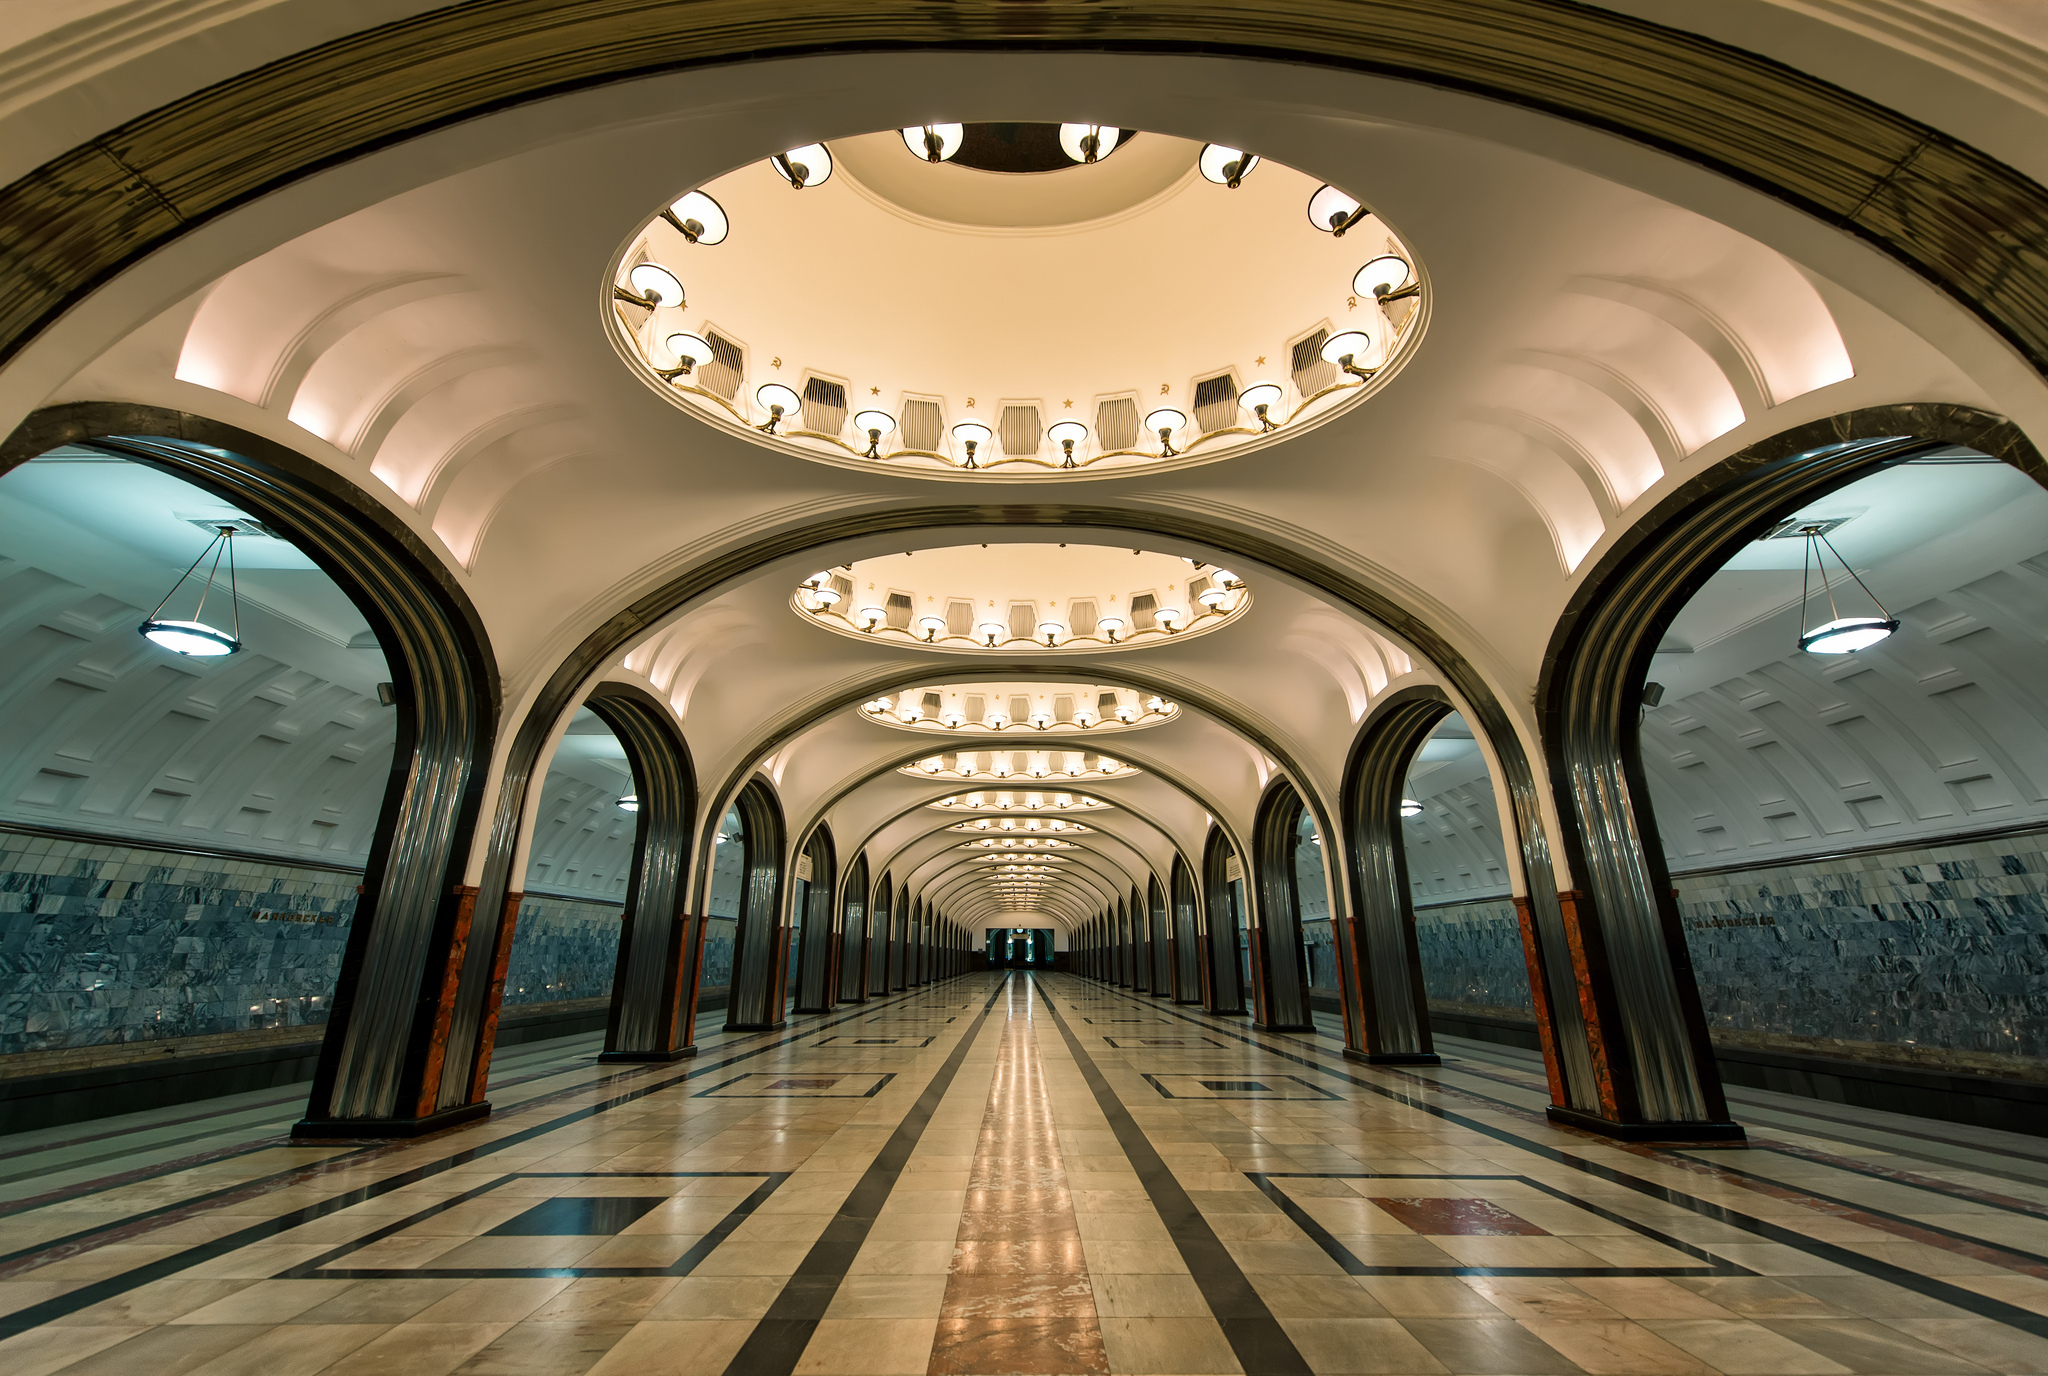 Iphone 7 Plus Hd Wallpapers Reddit Moscow Metro Hd Wallpaper Background Image 2048x1376